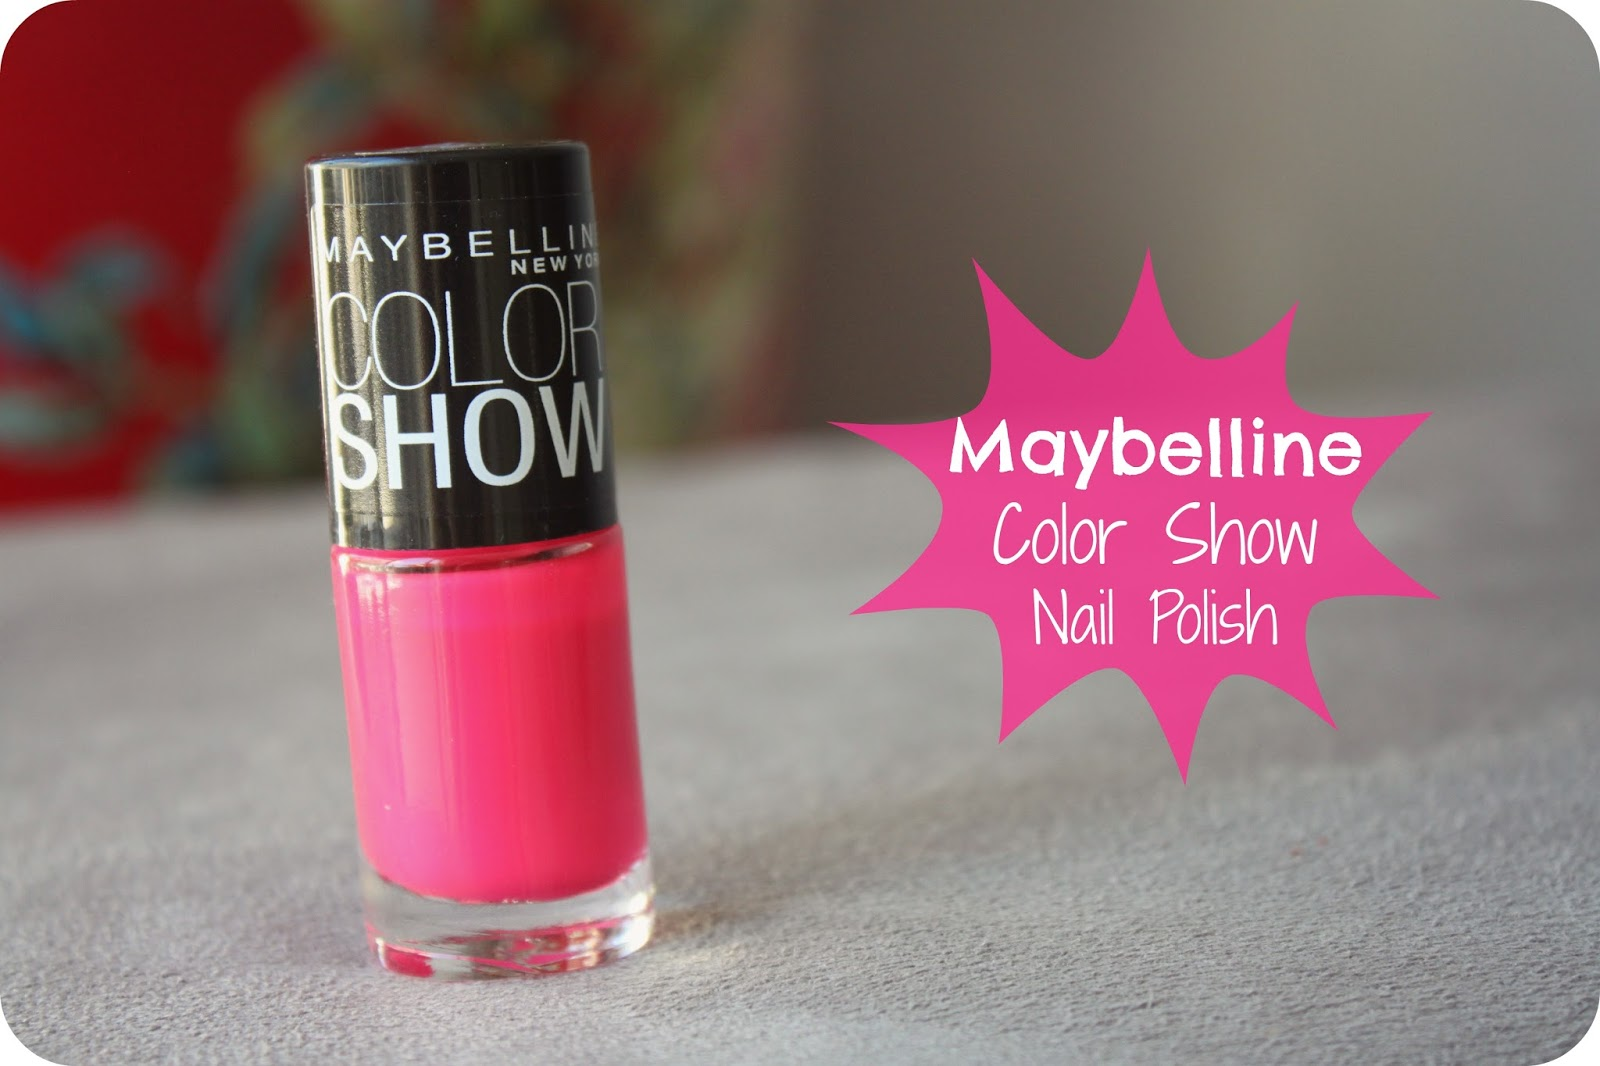 nail polish essays Shiny, shiny this gel nail polish provides incredible gel shine in beautiful colors, and no lamp required new color crush technology ensures high intensity color.